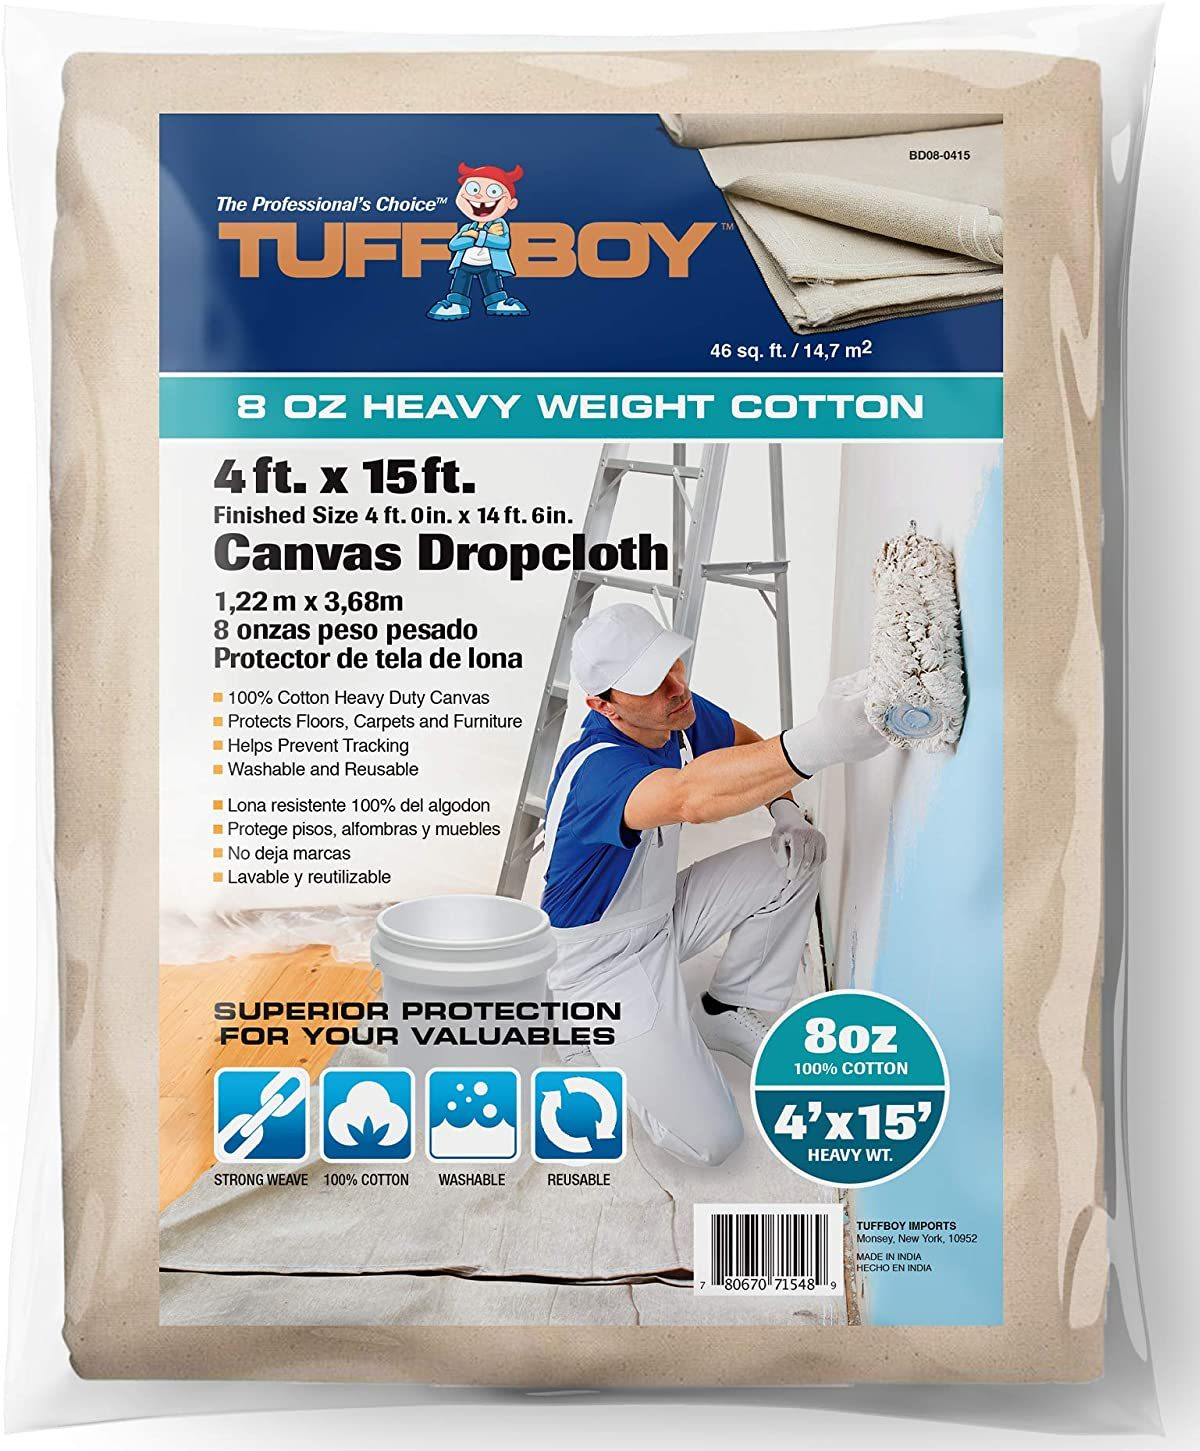 TUFFBOY Heavy Weight Cotton Canvas All Purpose Drop Cloth